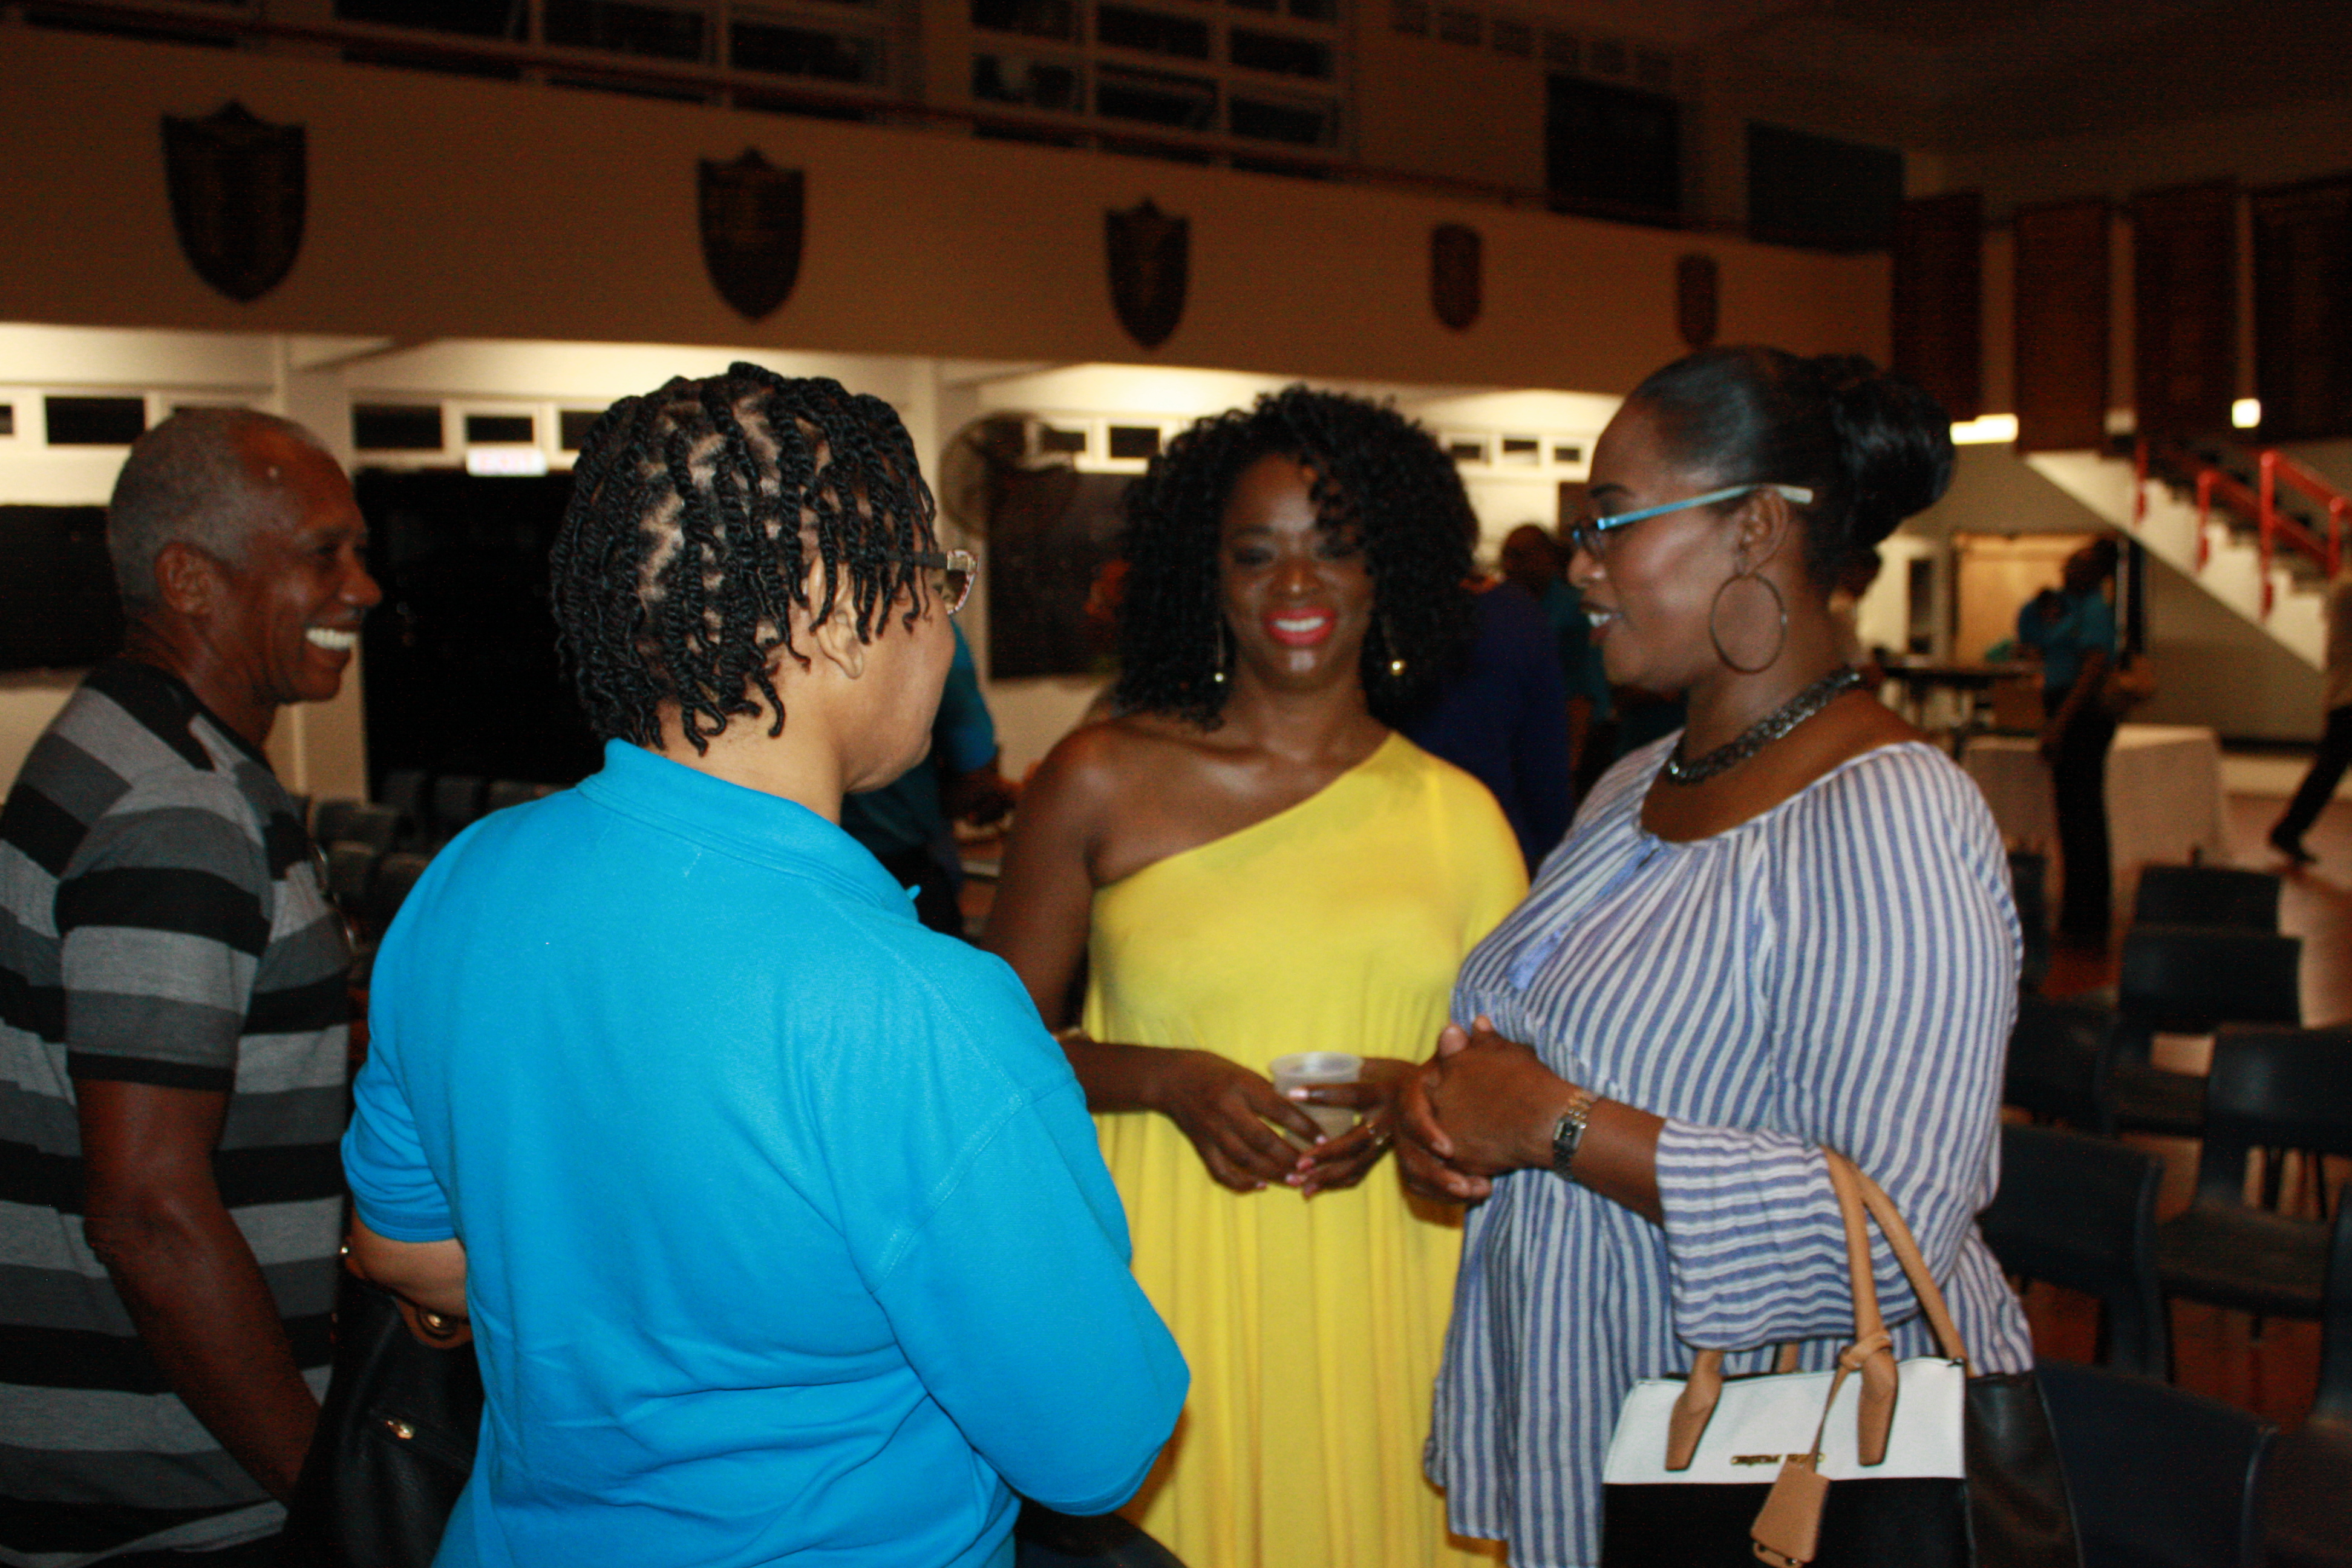 Members and guests mingle